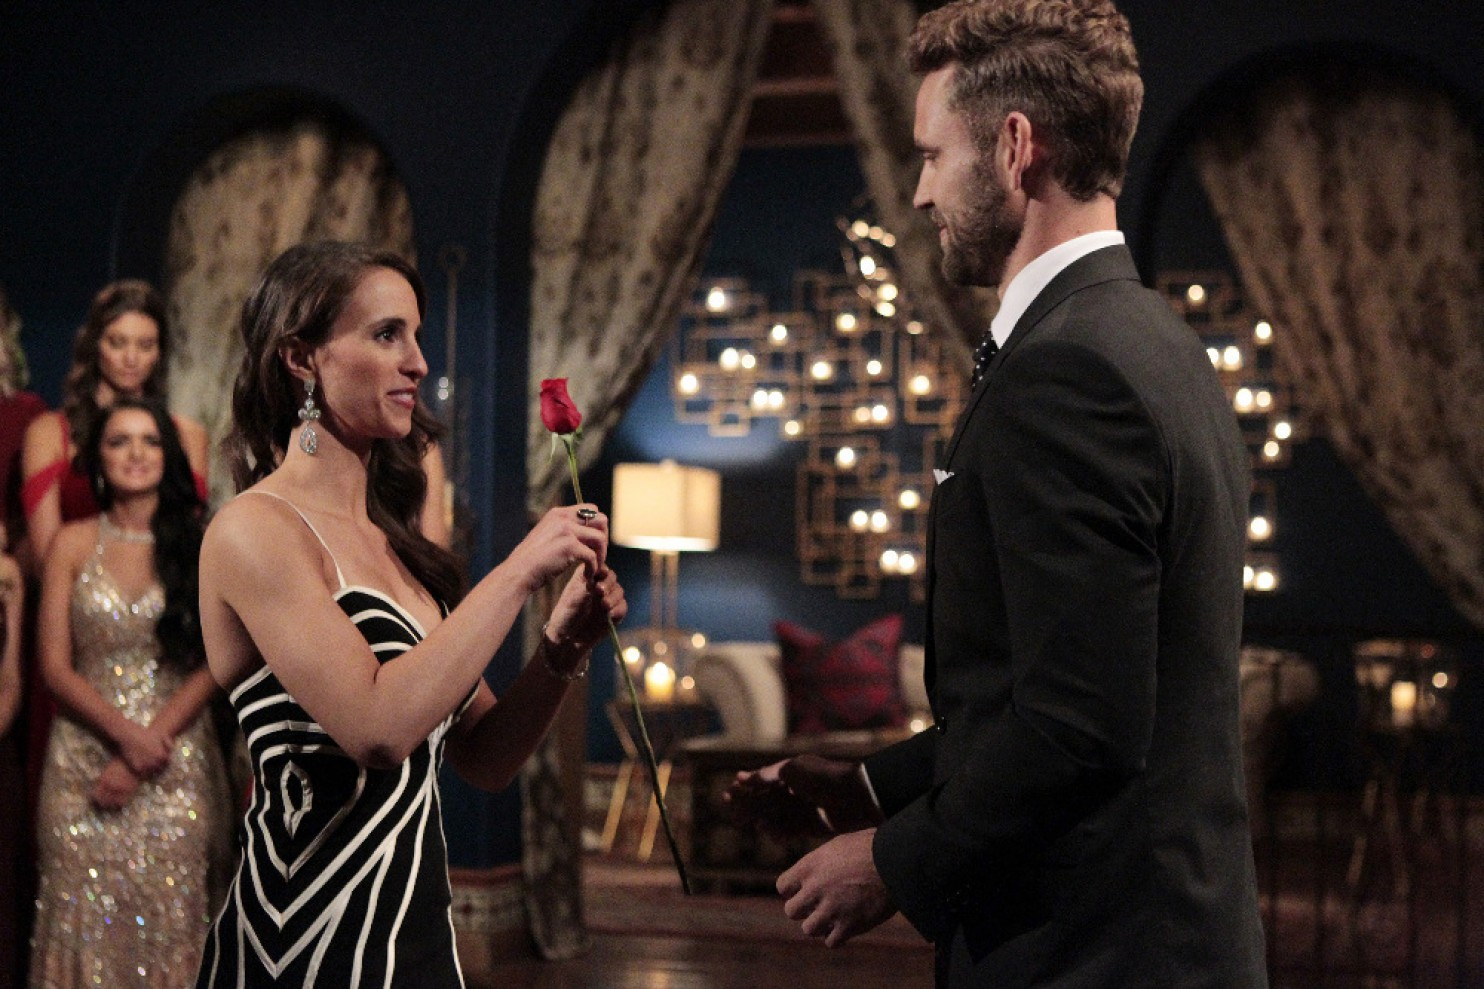 the bachelors nick viall finds love with vanessa grimaldi for now 2017 images